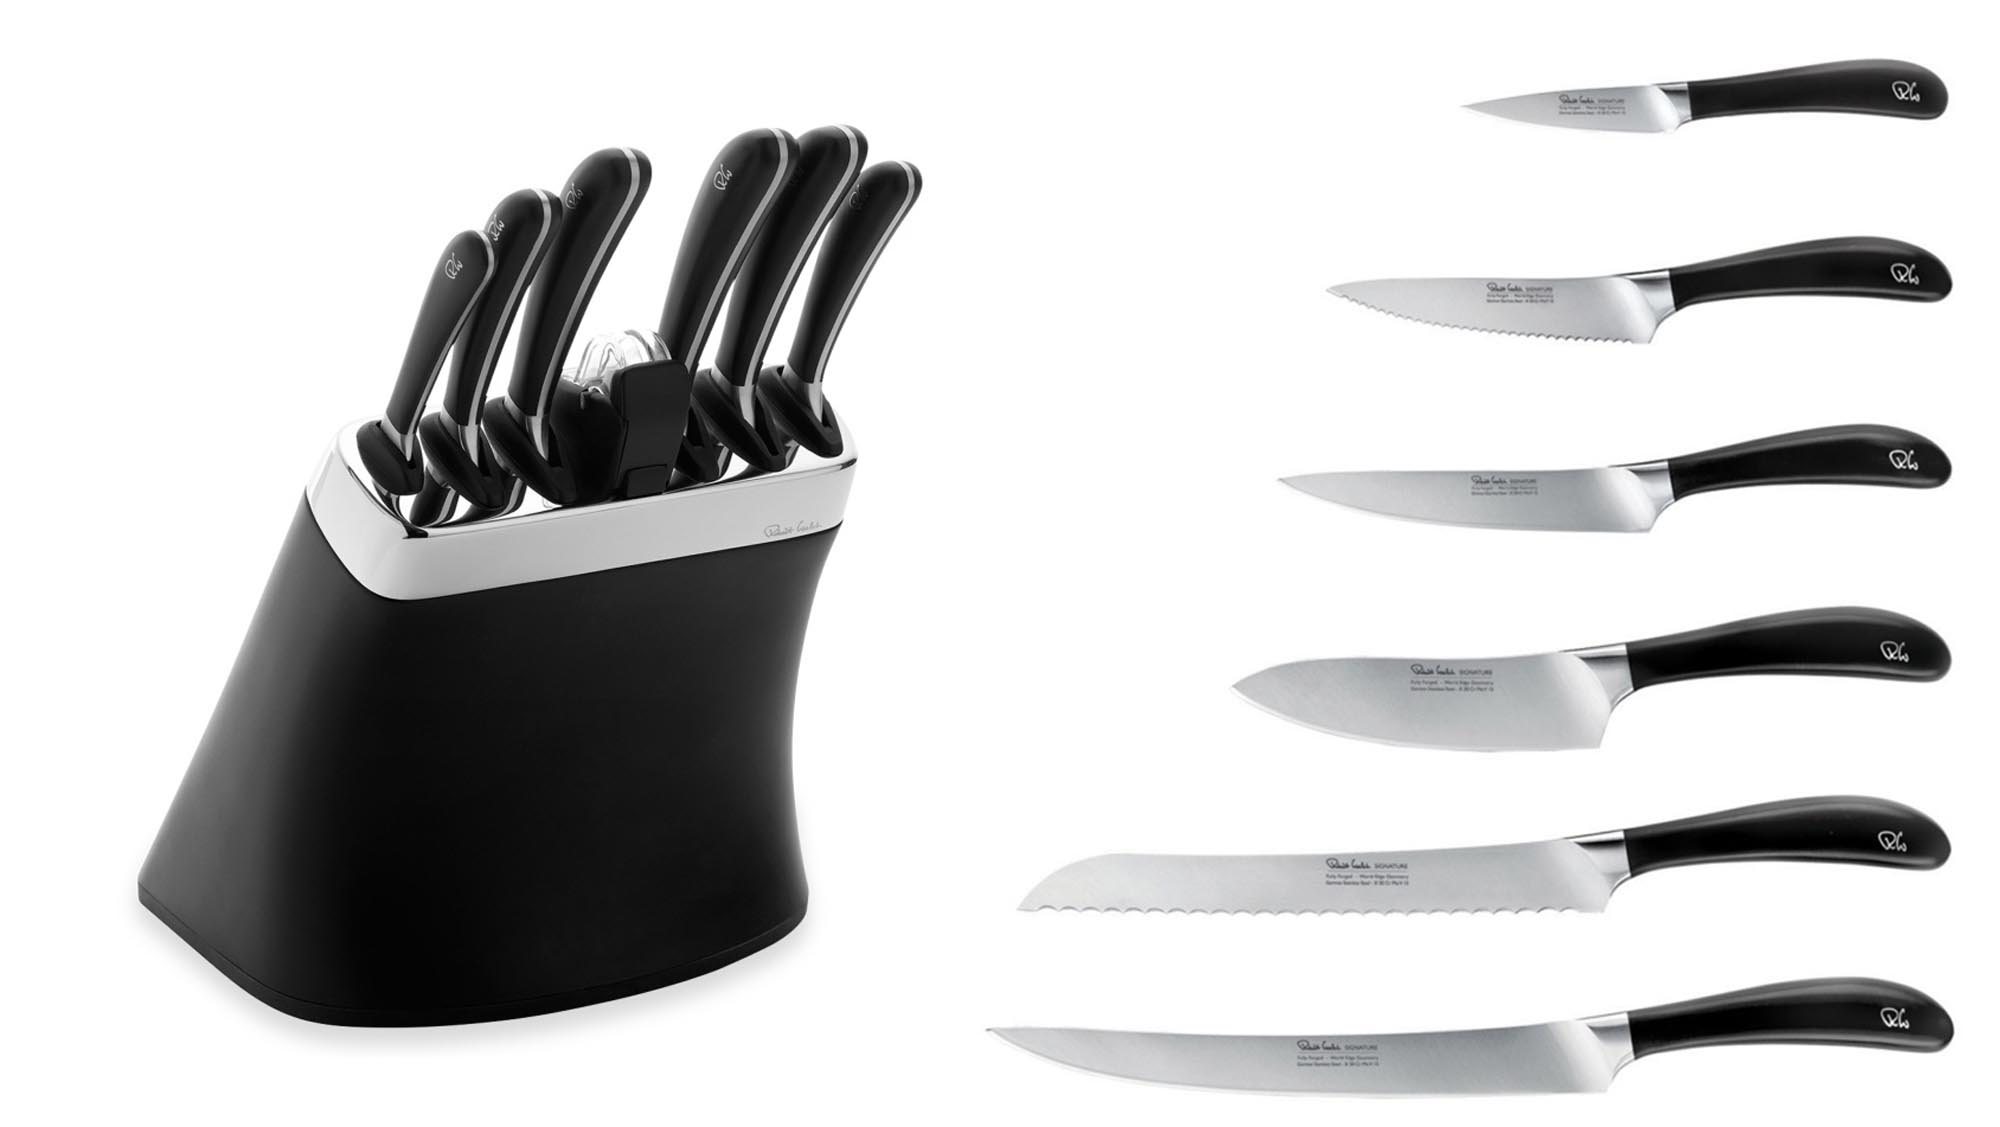 White Kitchen Knife Set best kitchen knives: the best kitchen knife sets, and the best